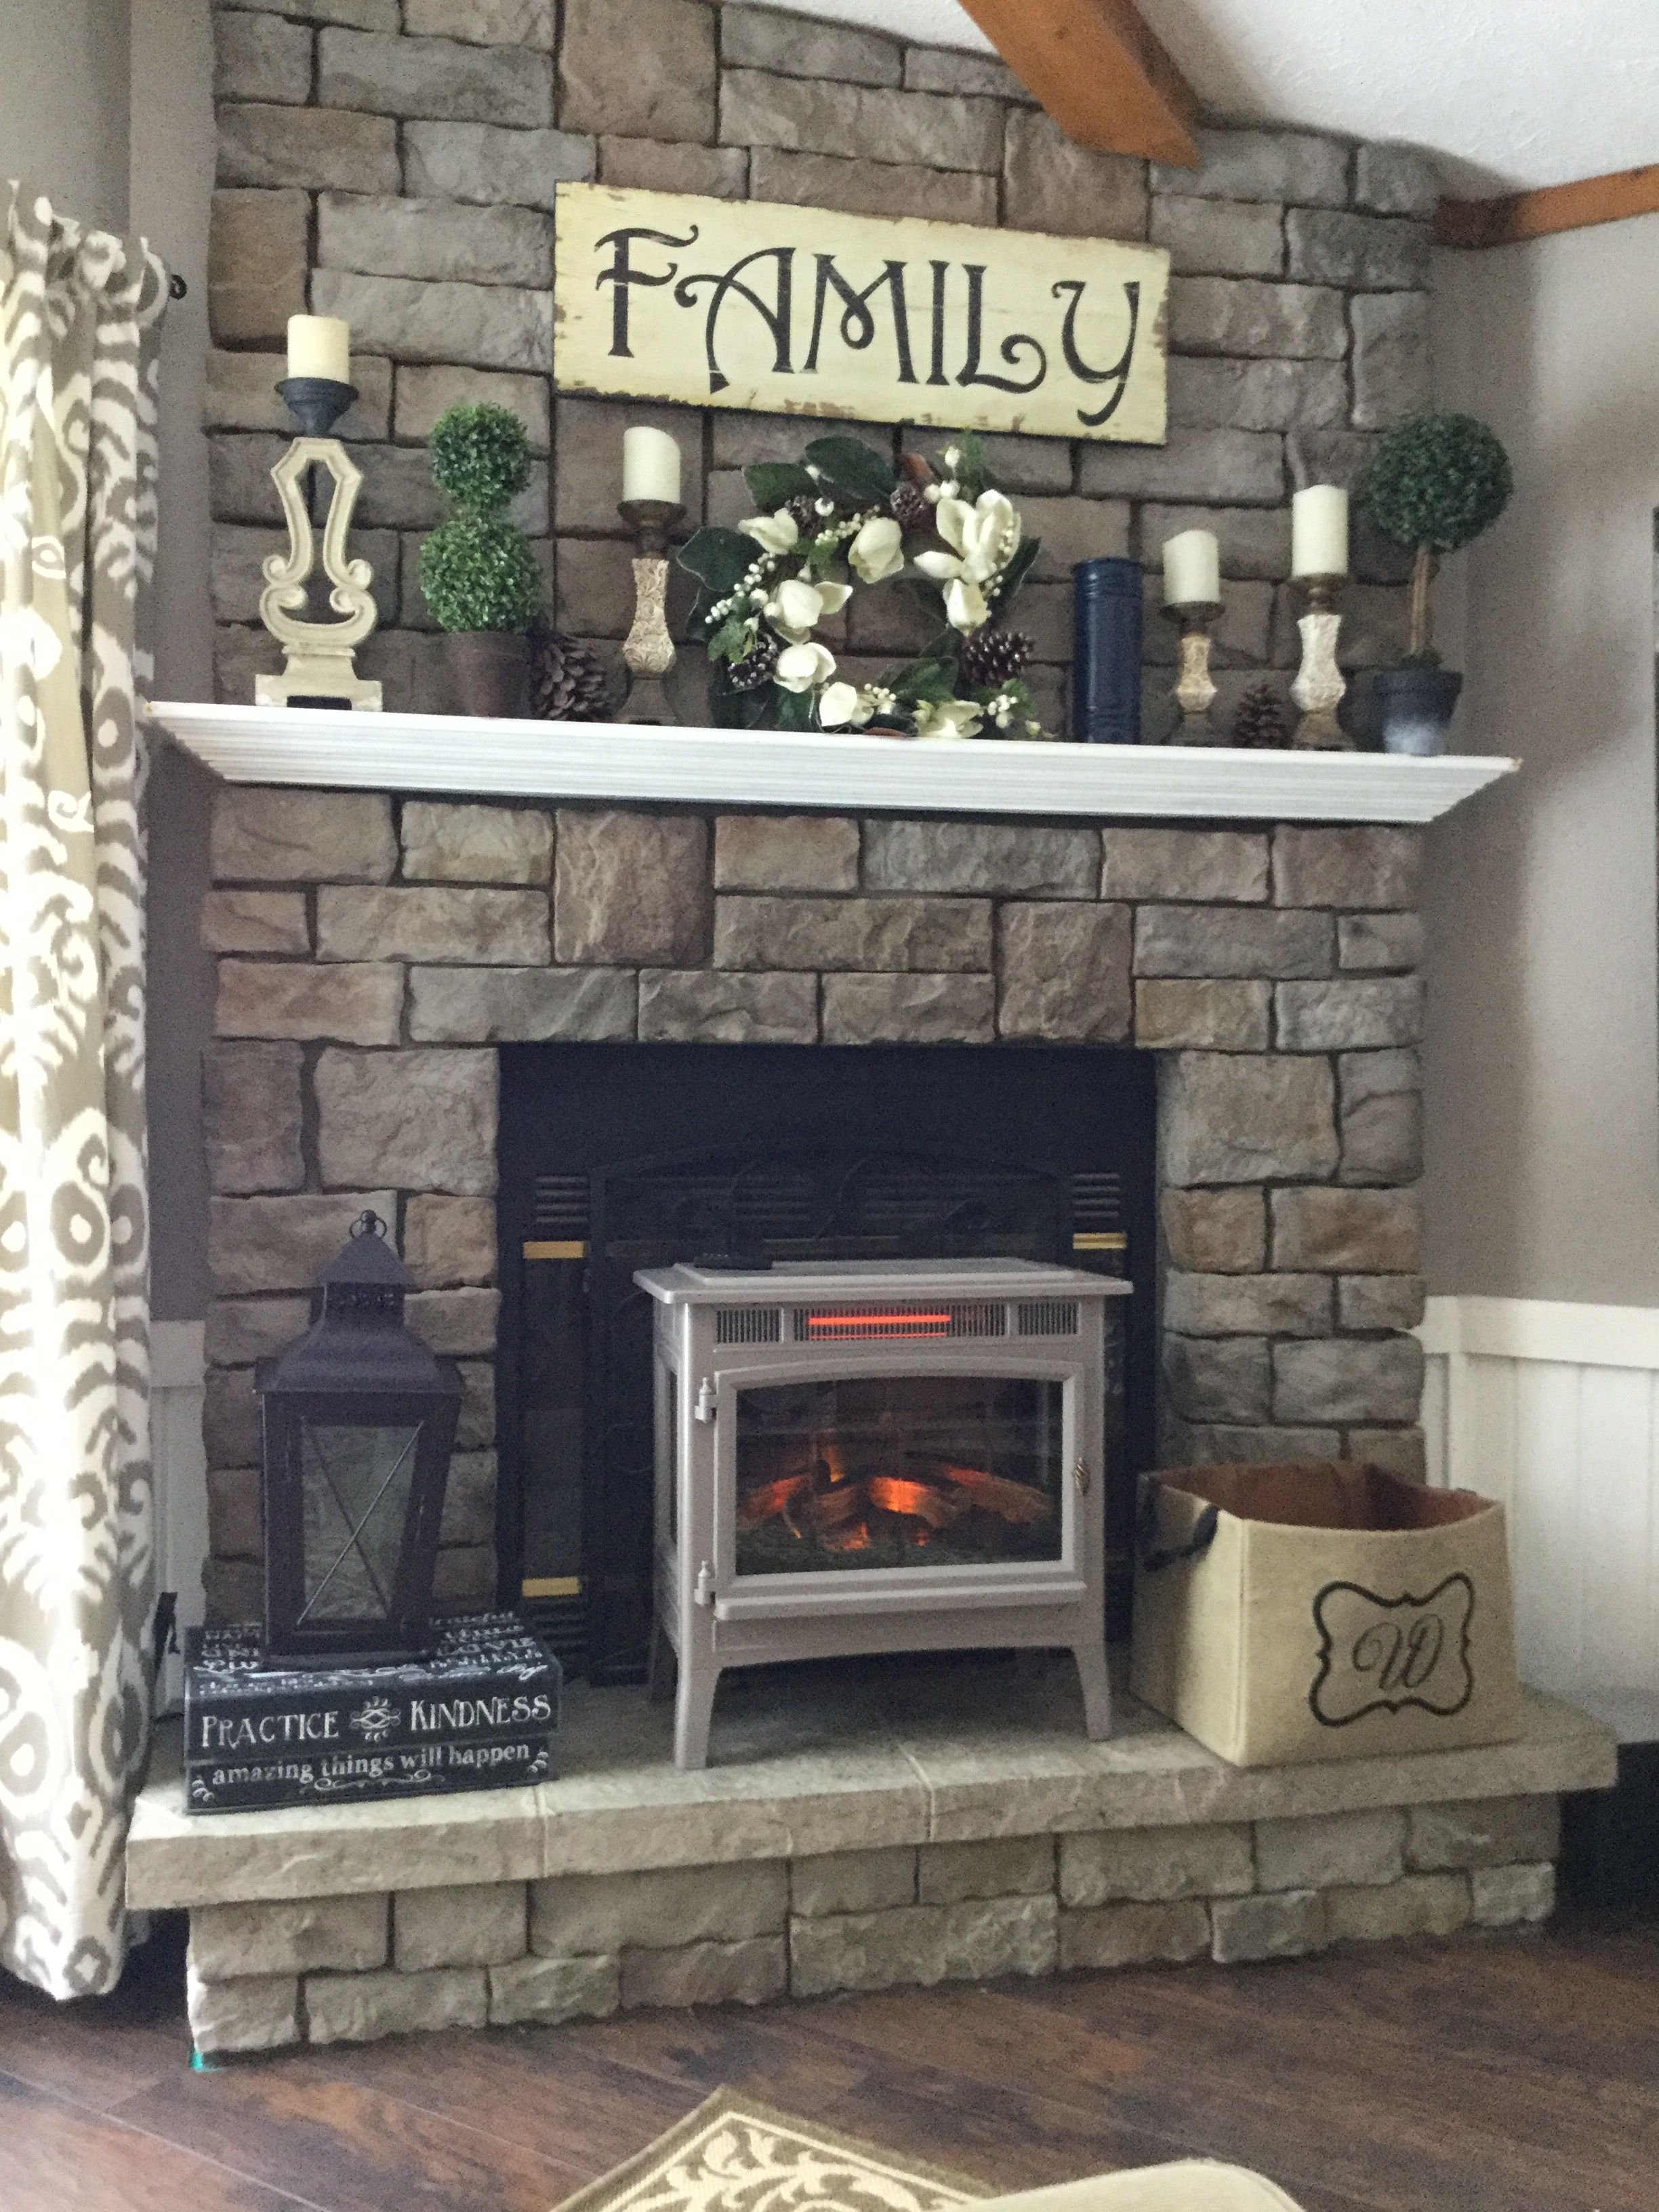 Pin By Jovy Rios On Our Nest Our Home Fireplace Mantle Decor Brick Fireplace Makeover Rustic Fireplace Mantle